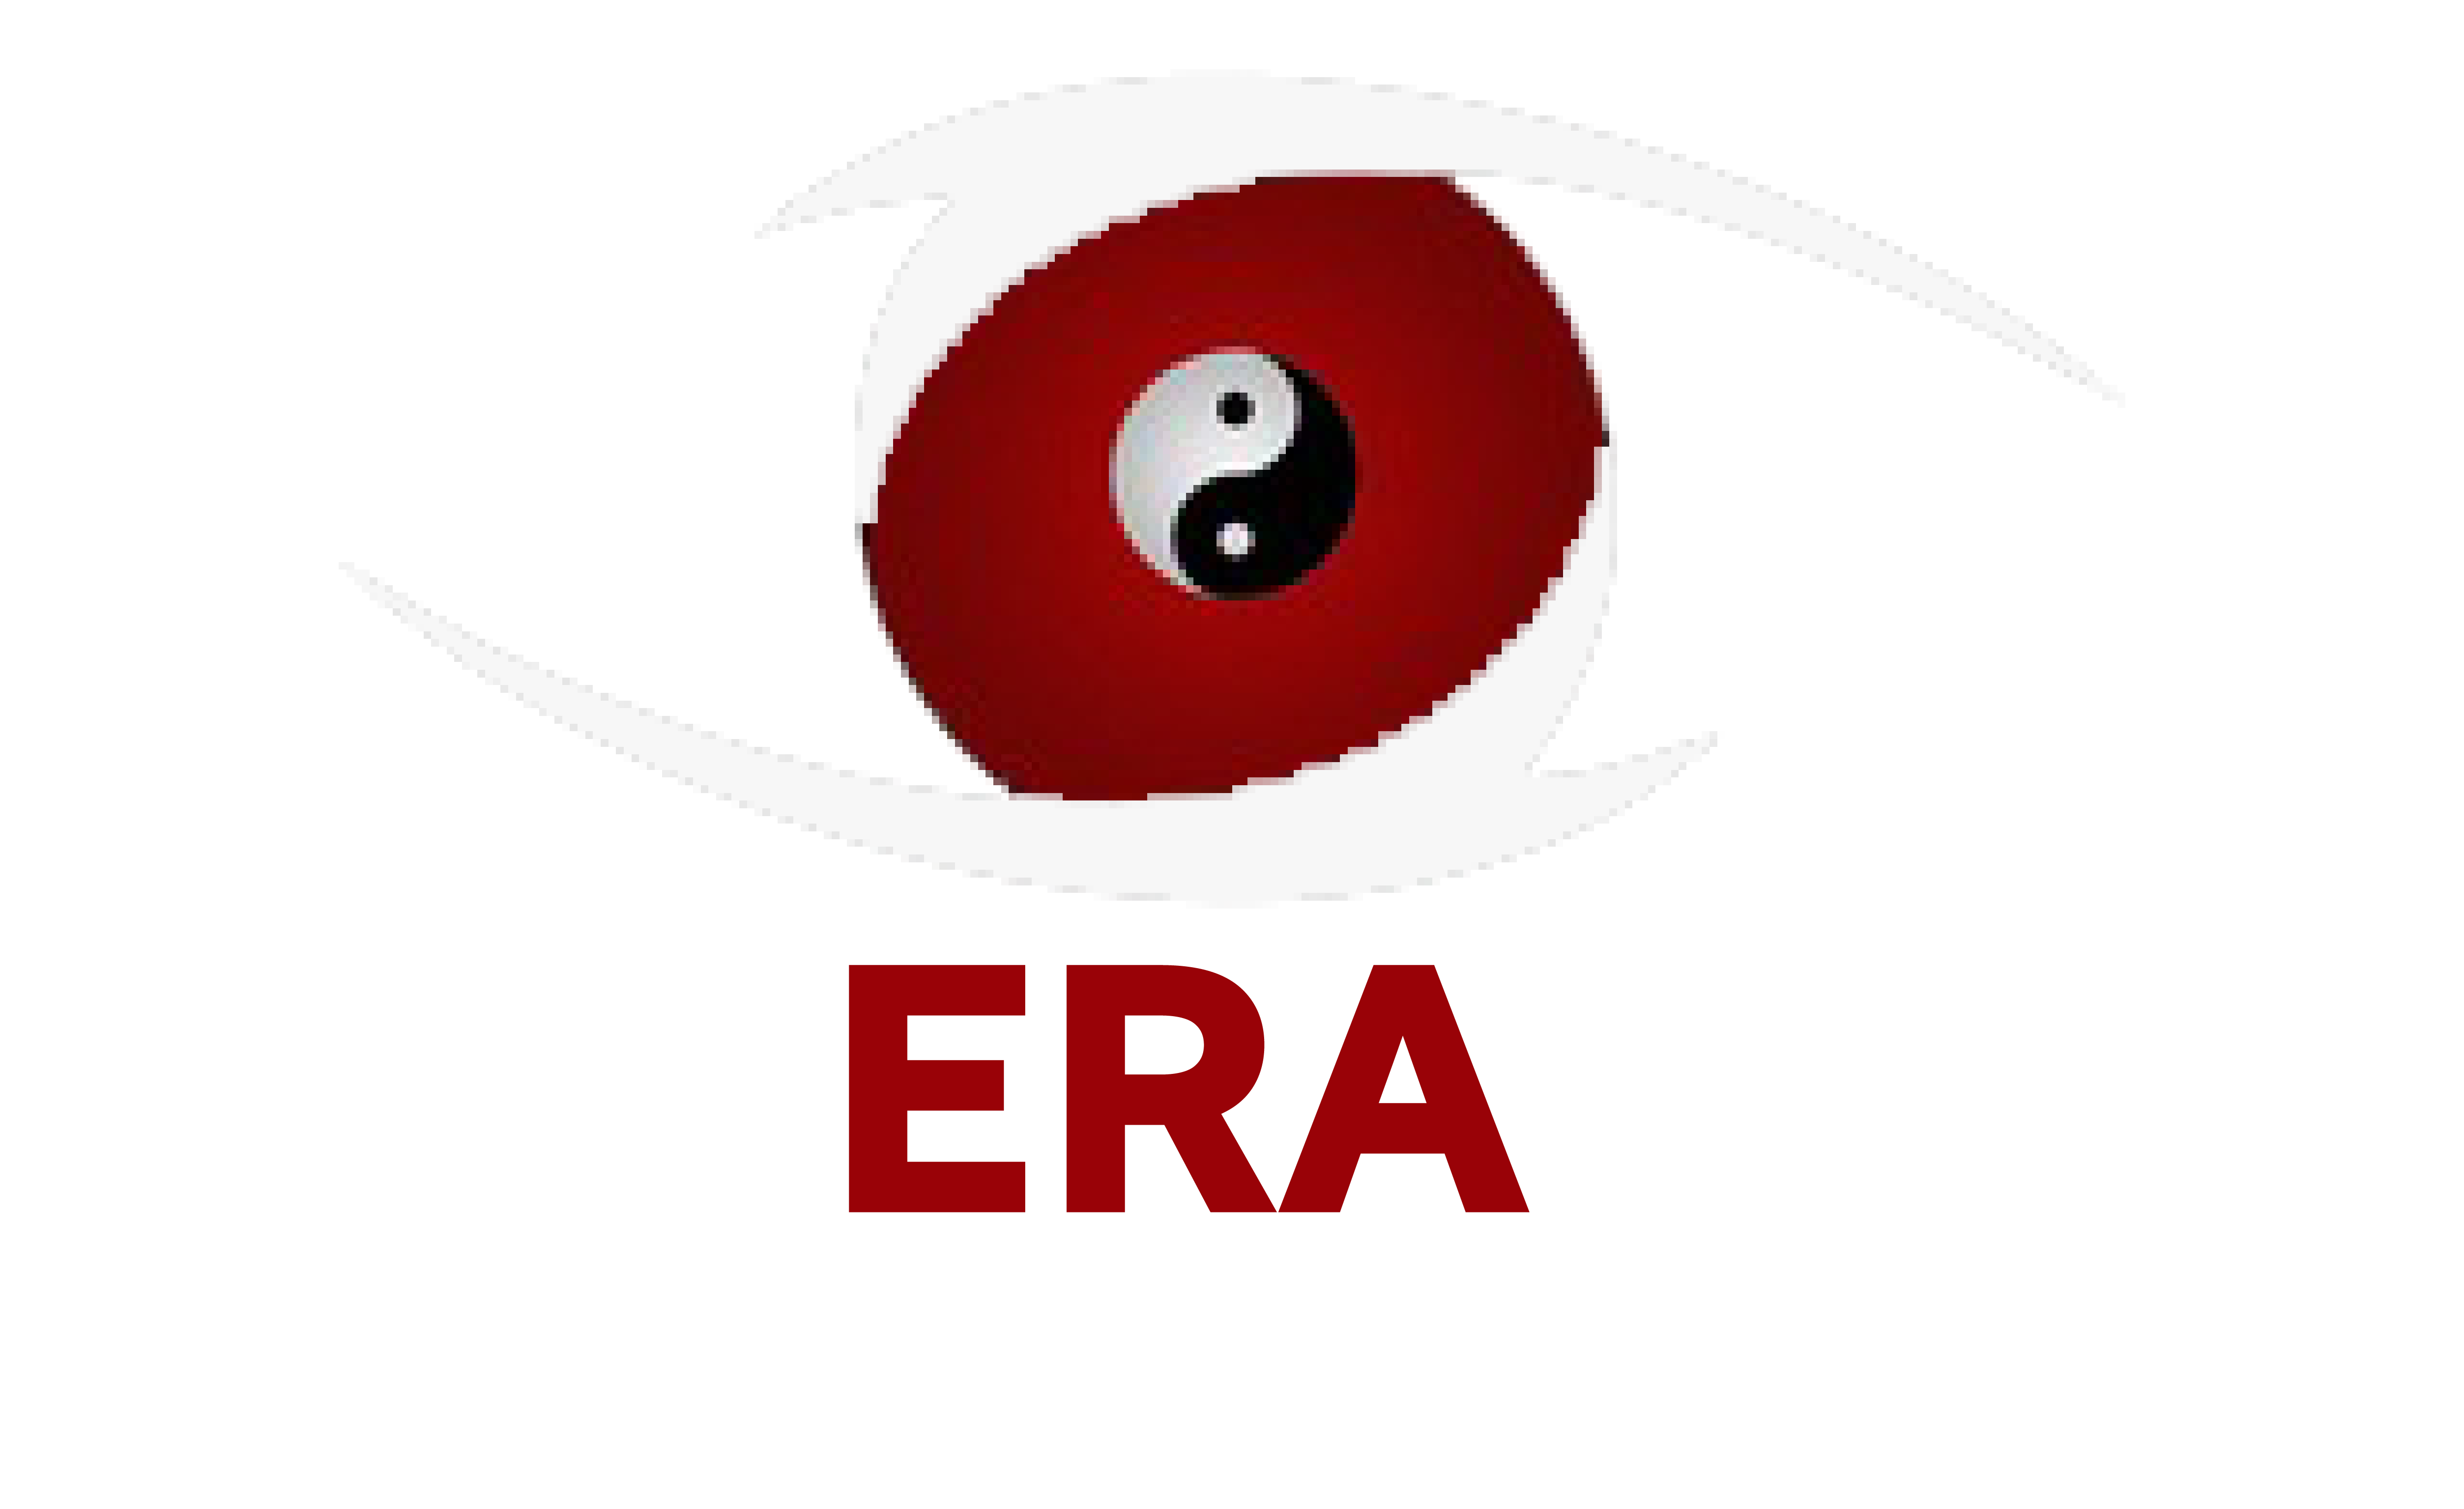 Health and well being training | ERA Martial Arts & Fitness